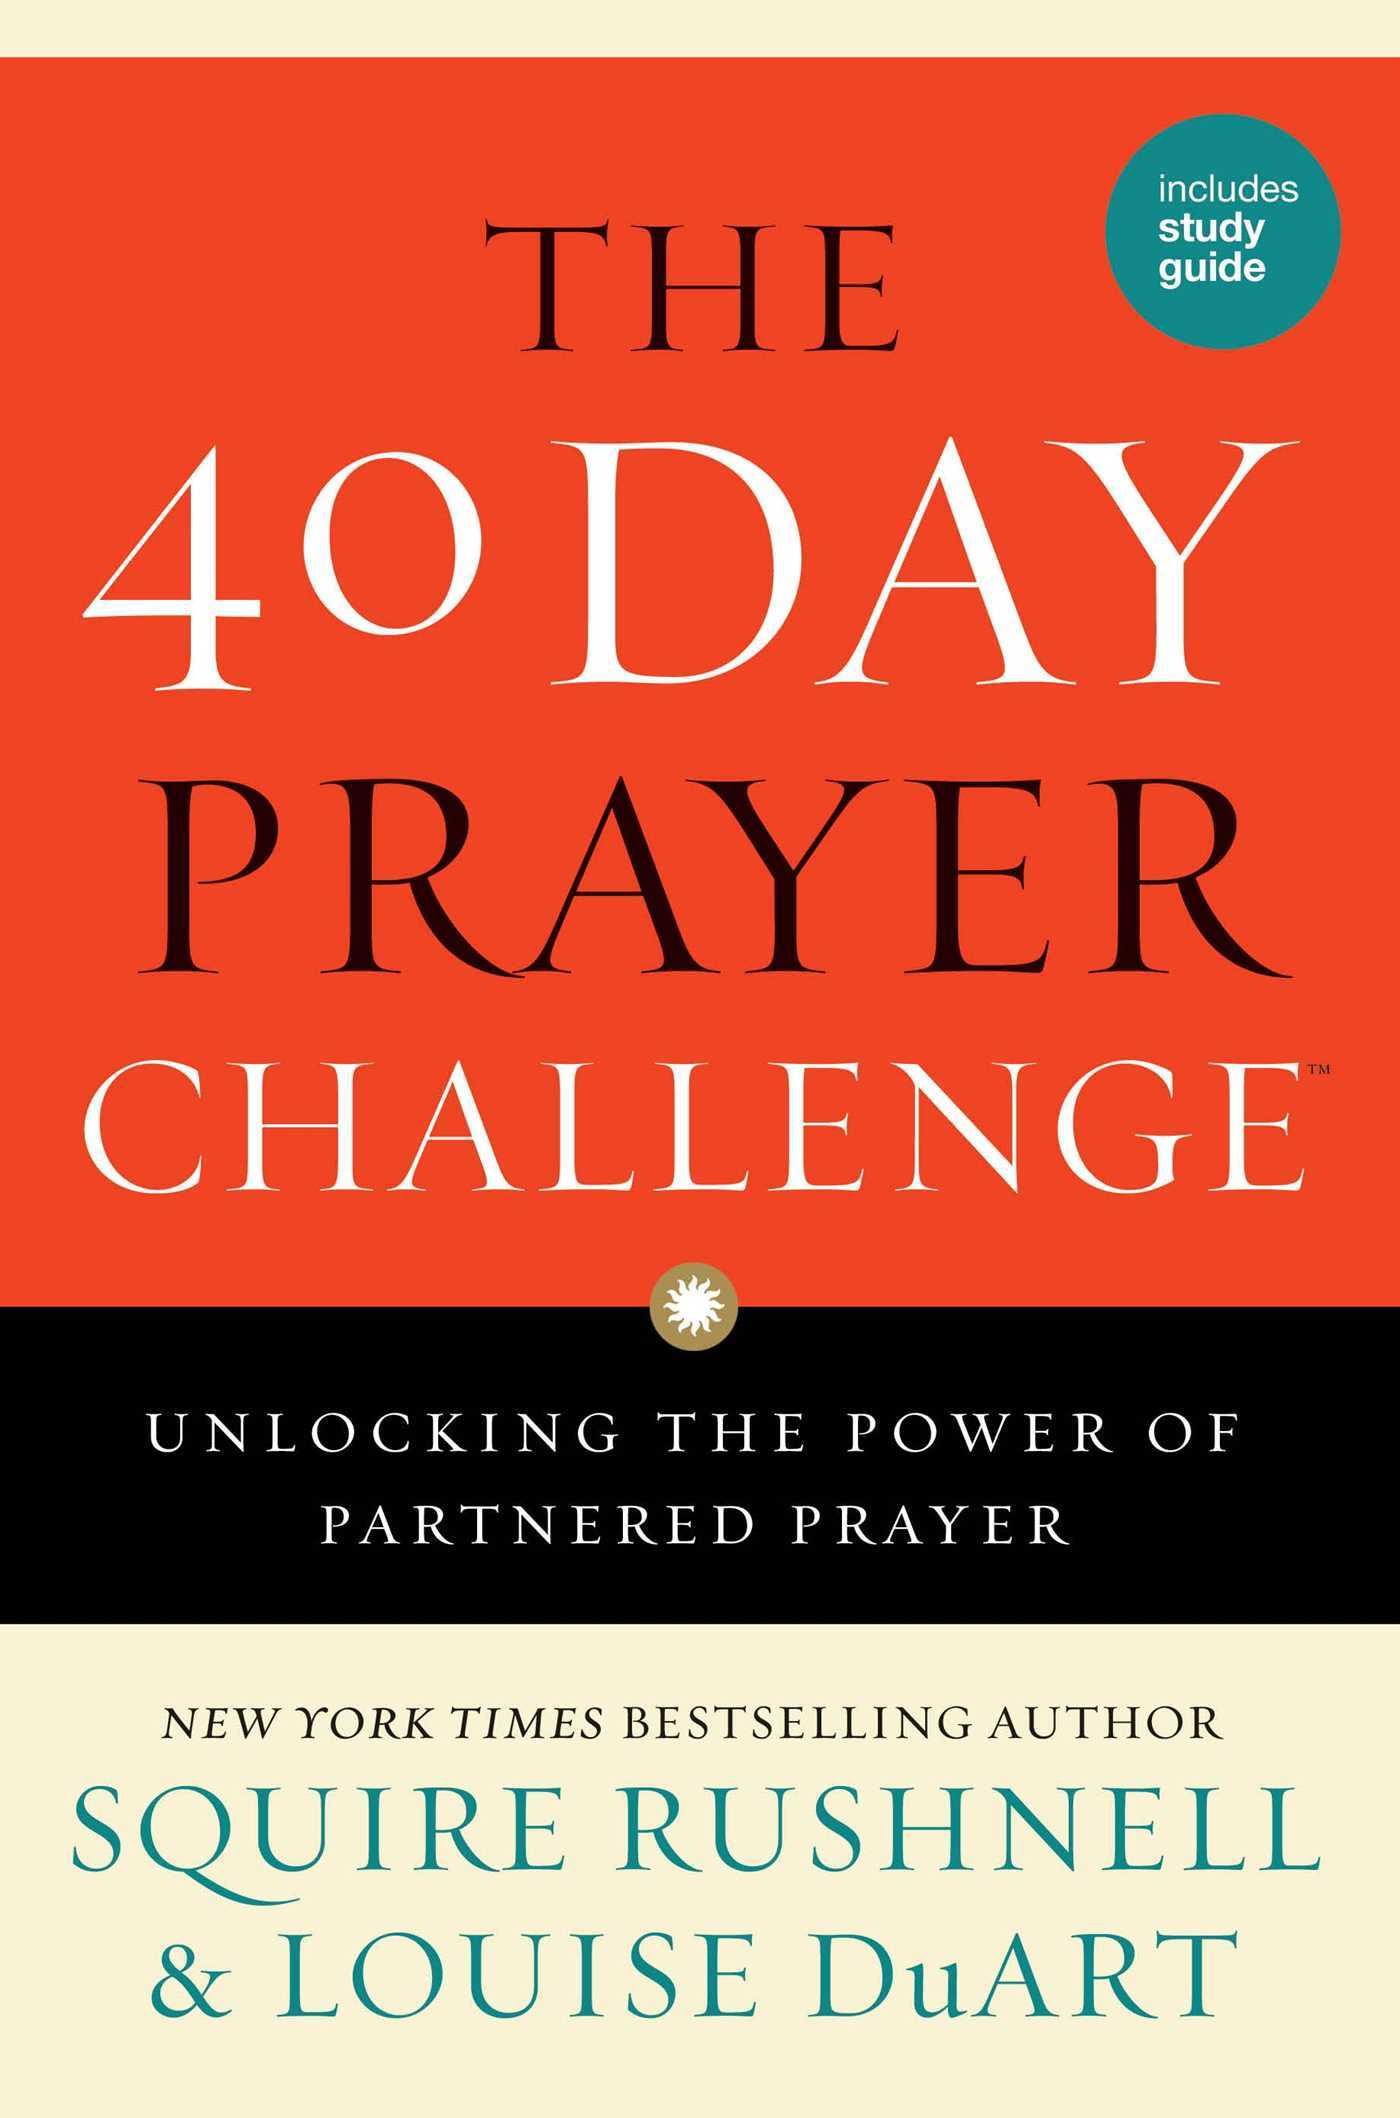 The 40 Day Prayer Challenge: Unlocking the Power of Partnered Prayer  by  Squire Rushnell